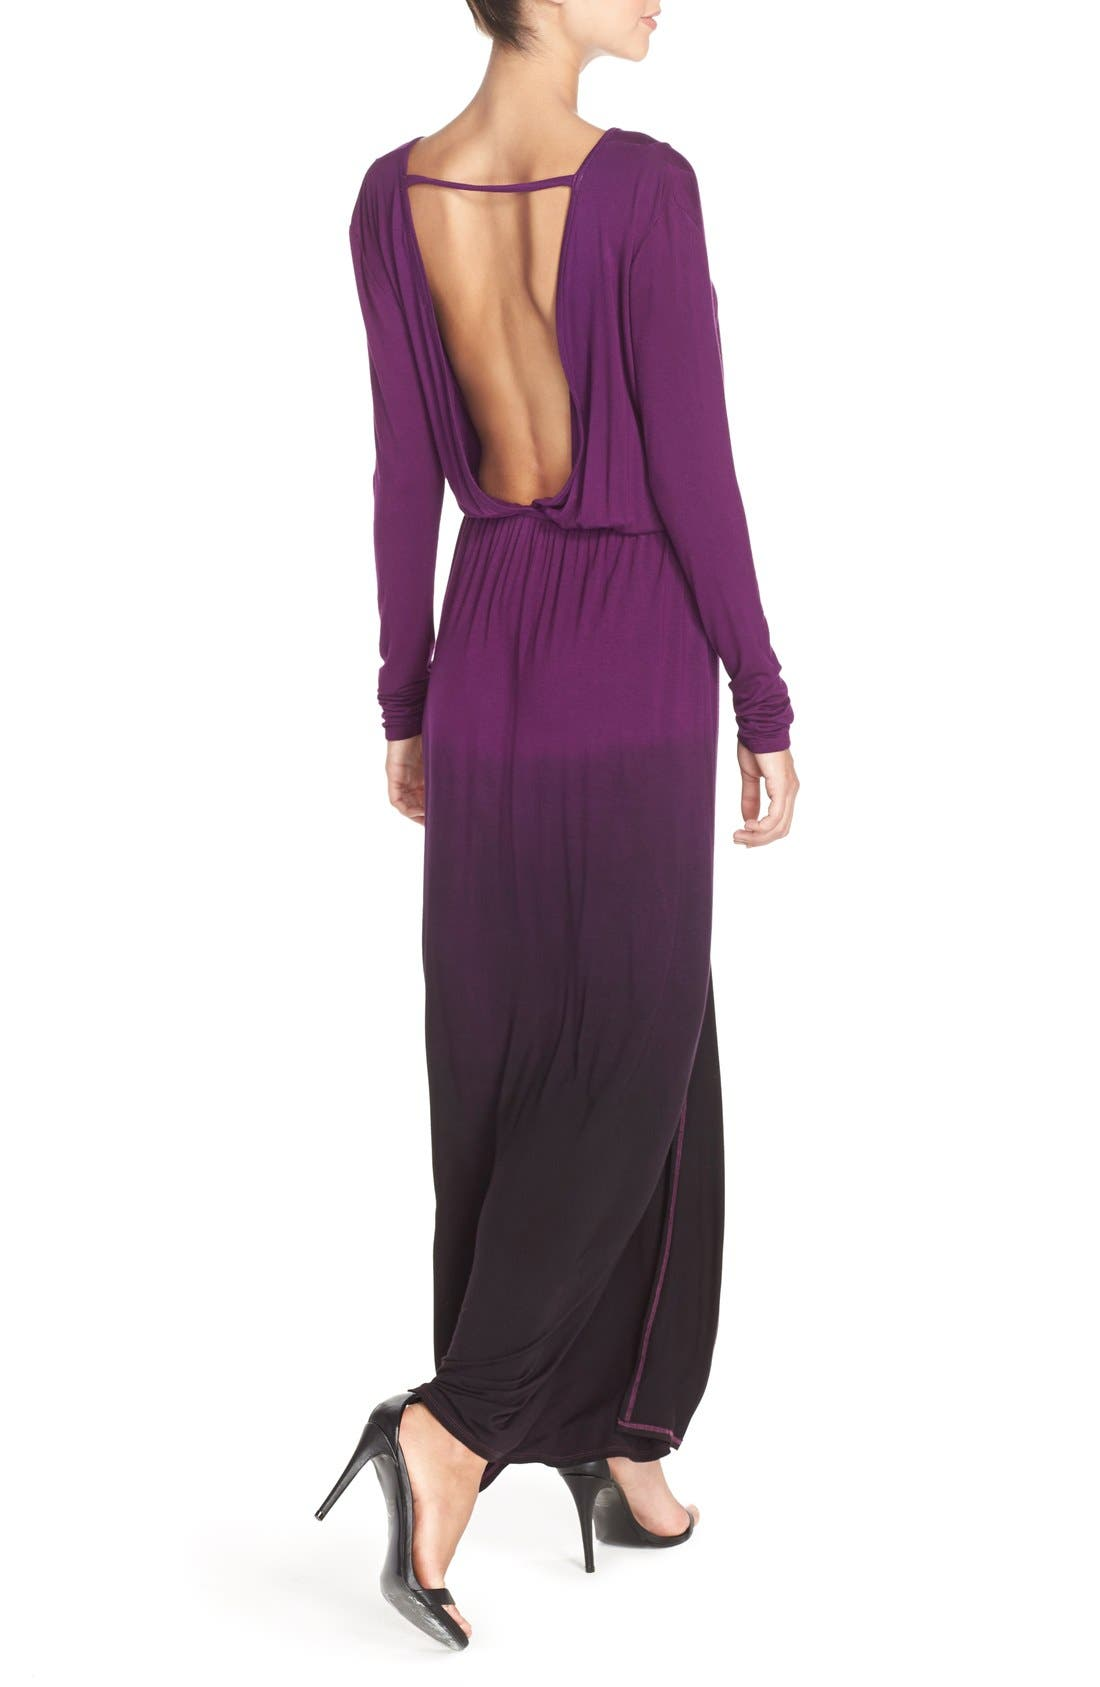 Tie Dye Faux Wrap Maxi Dress,                             Alternate thumbnail 3, color,                             PURPLE/ BLACK OMBRE